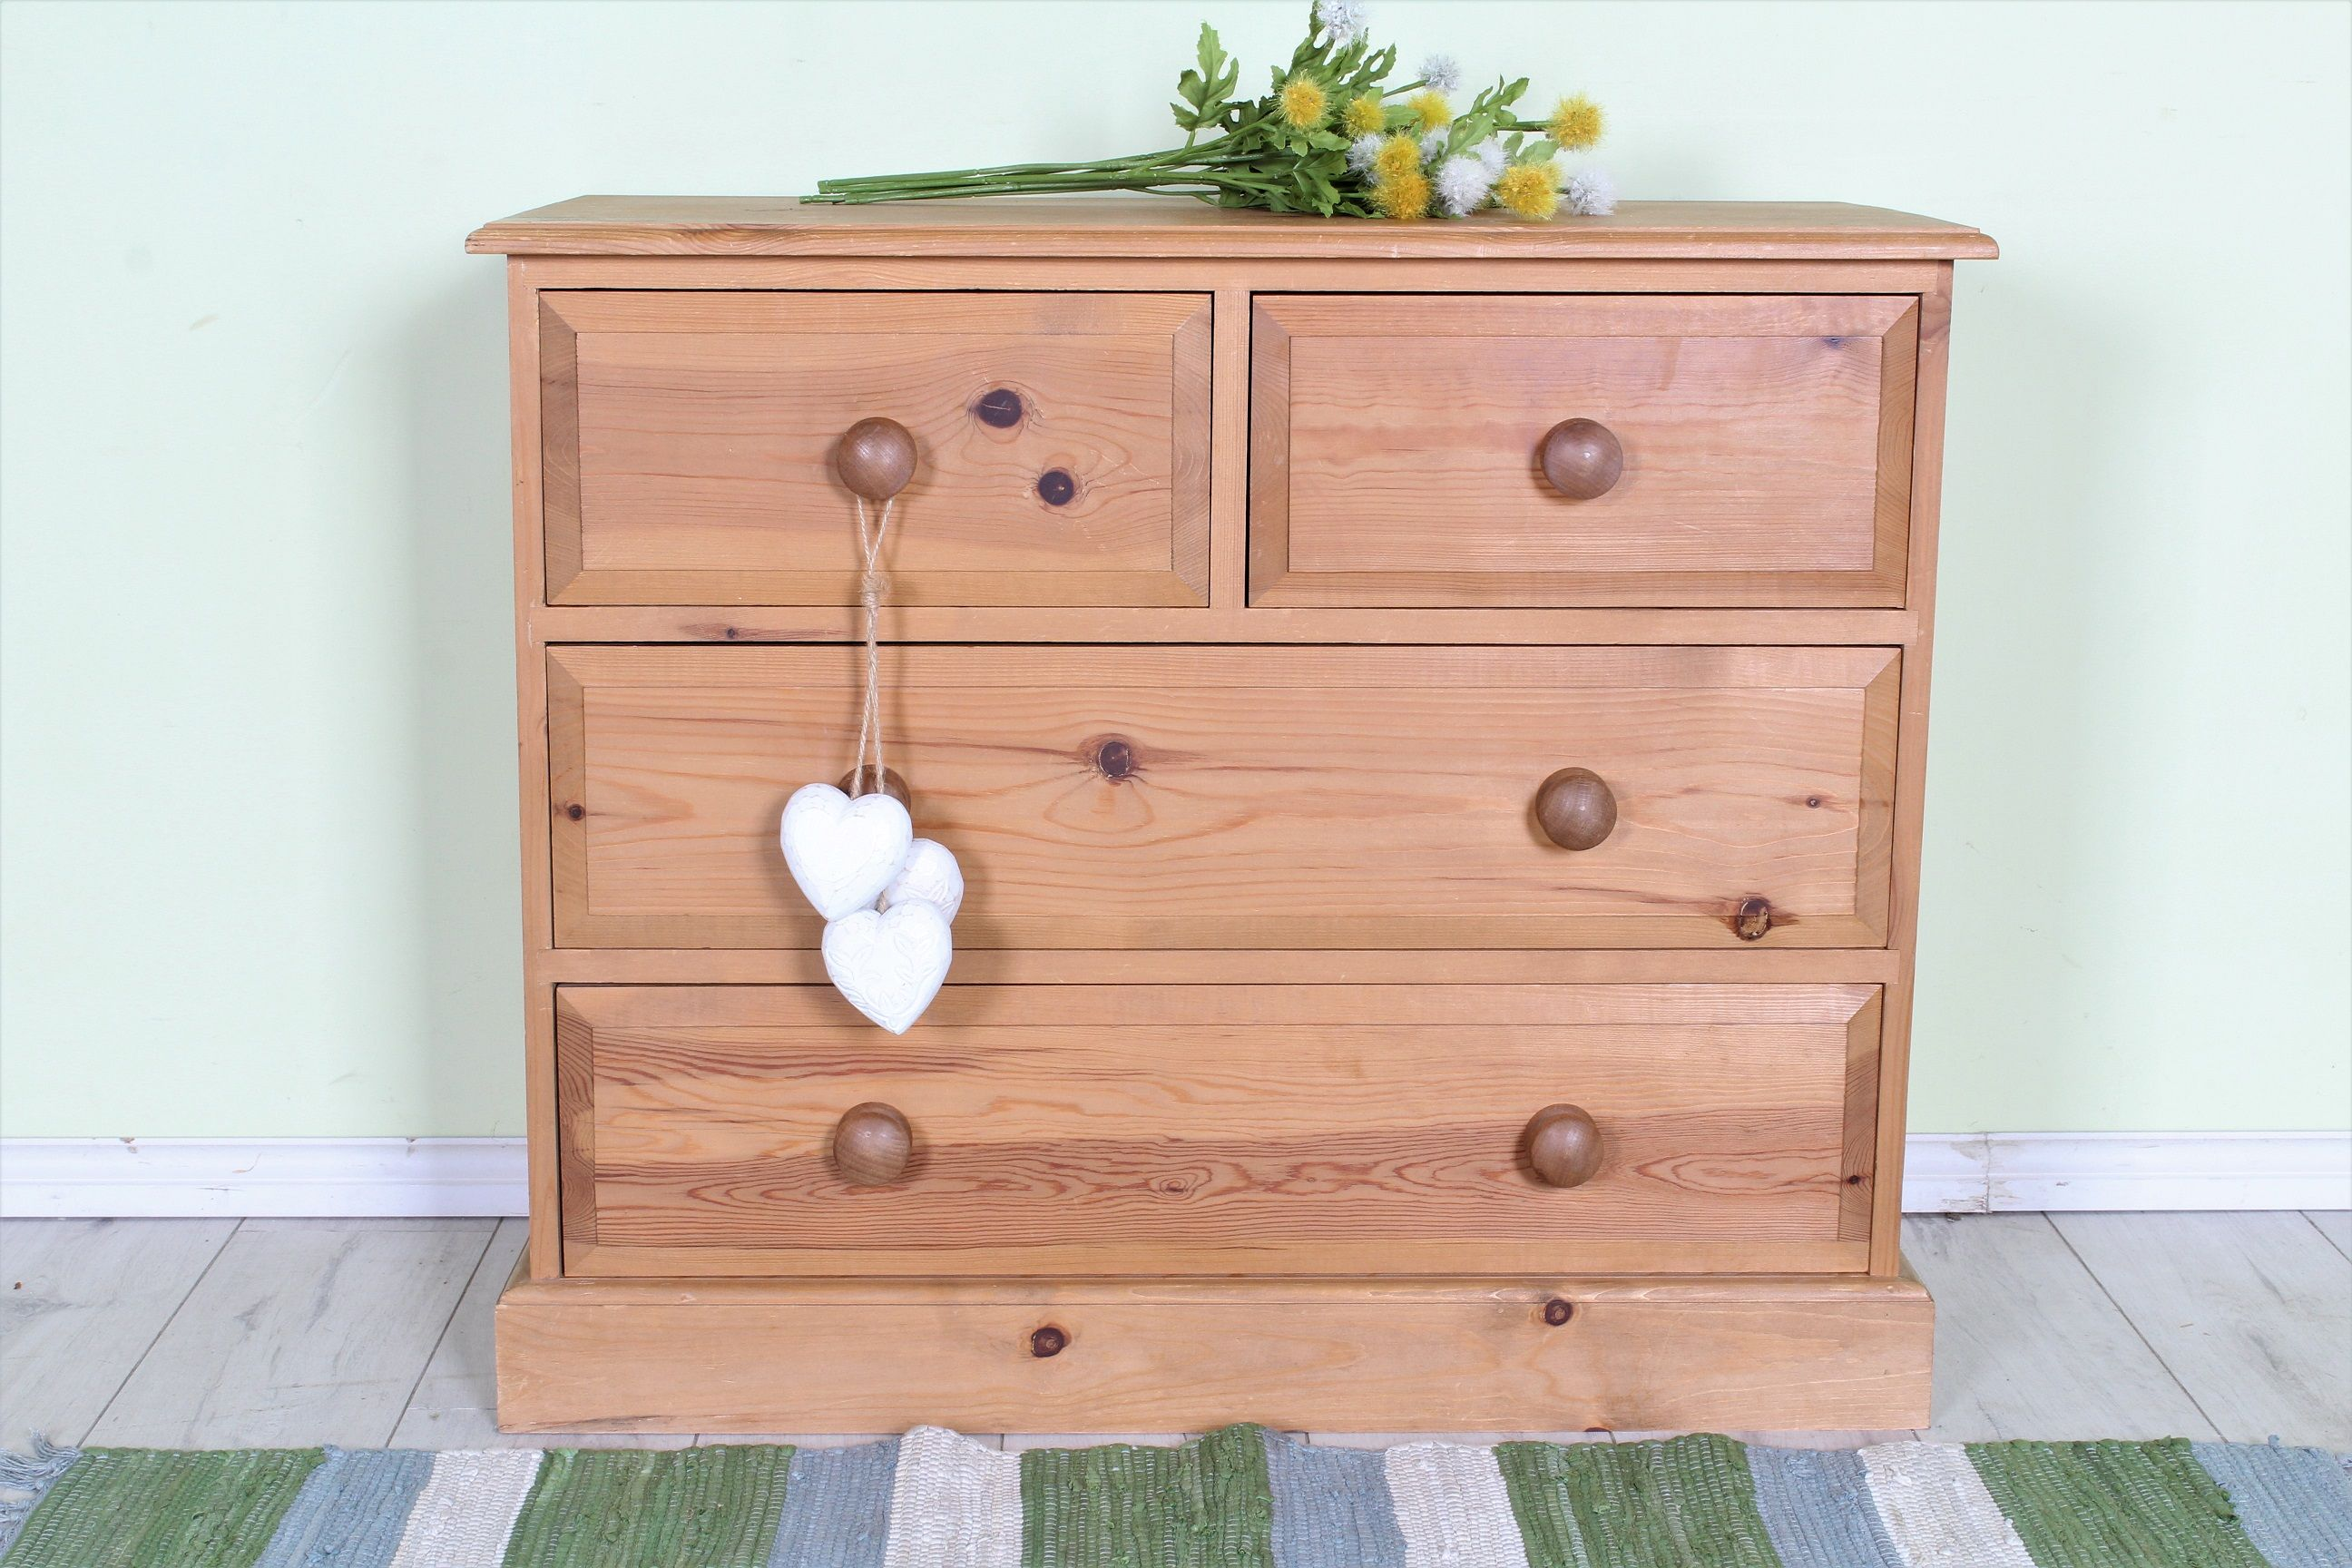 140 2 Over Pine Chest Of Drawers Waxed Light In Colour With Age